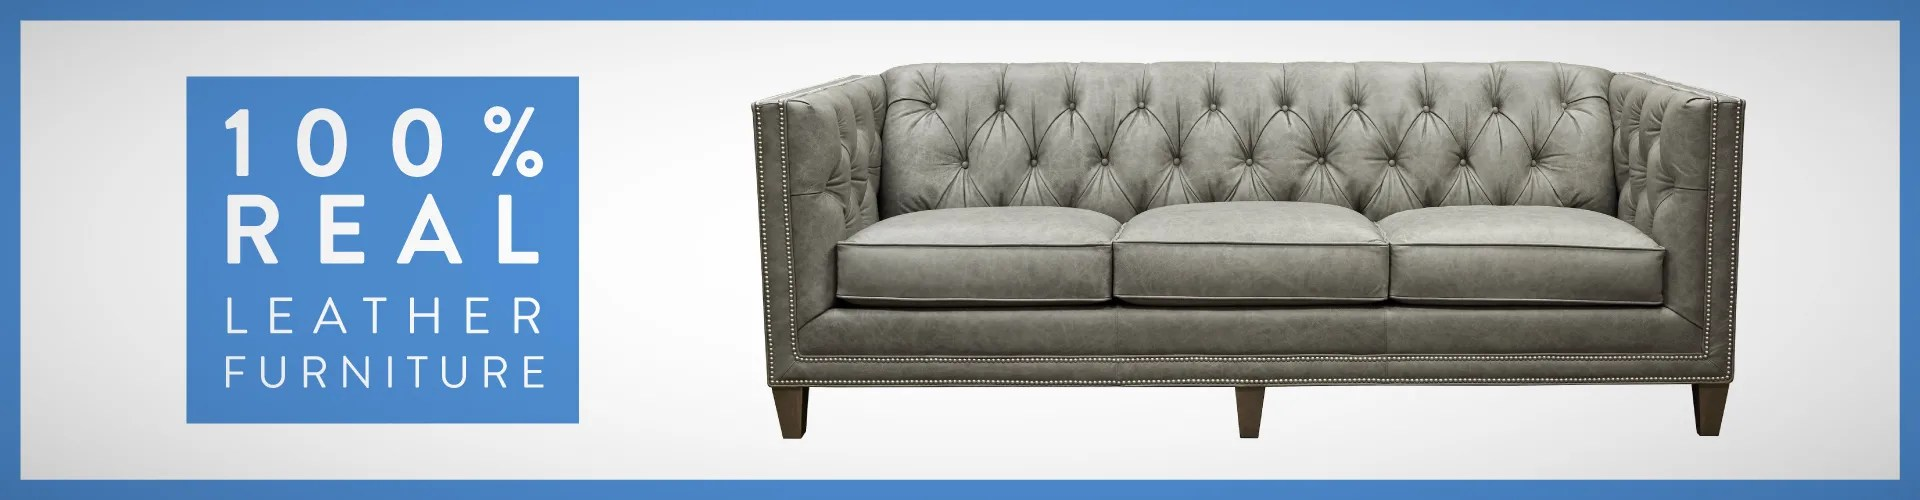 Sofa For Sale Houston 100 Real Leather Furniture